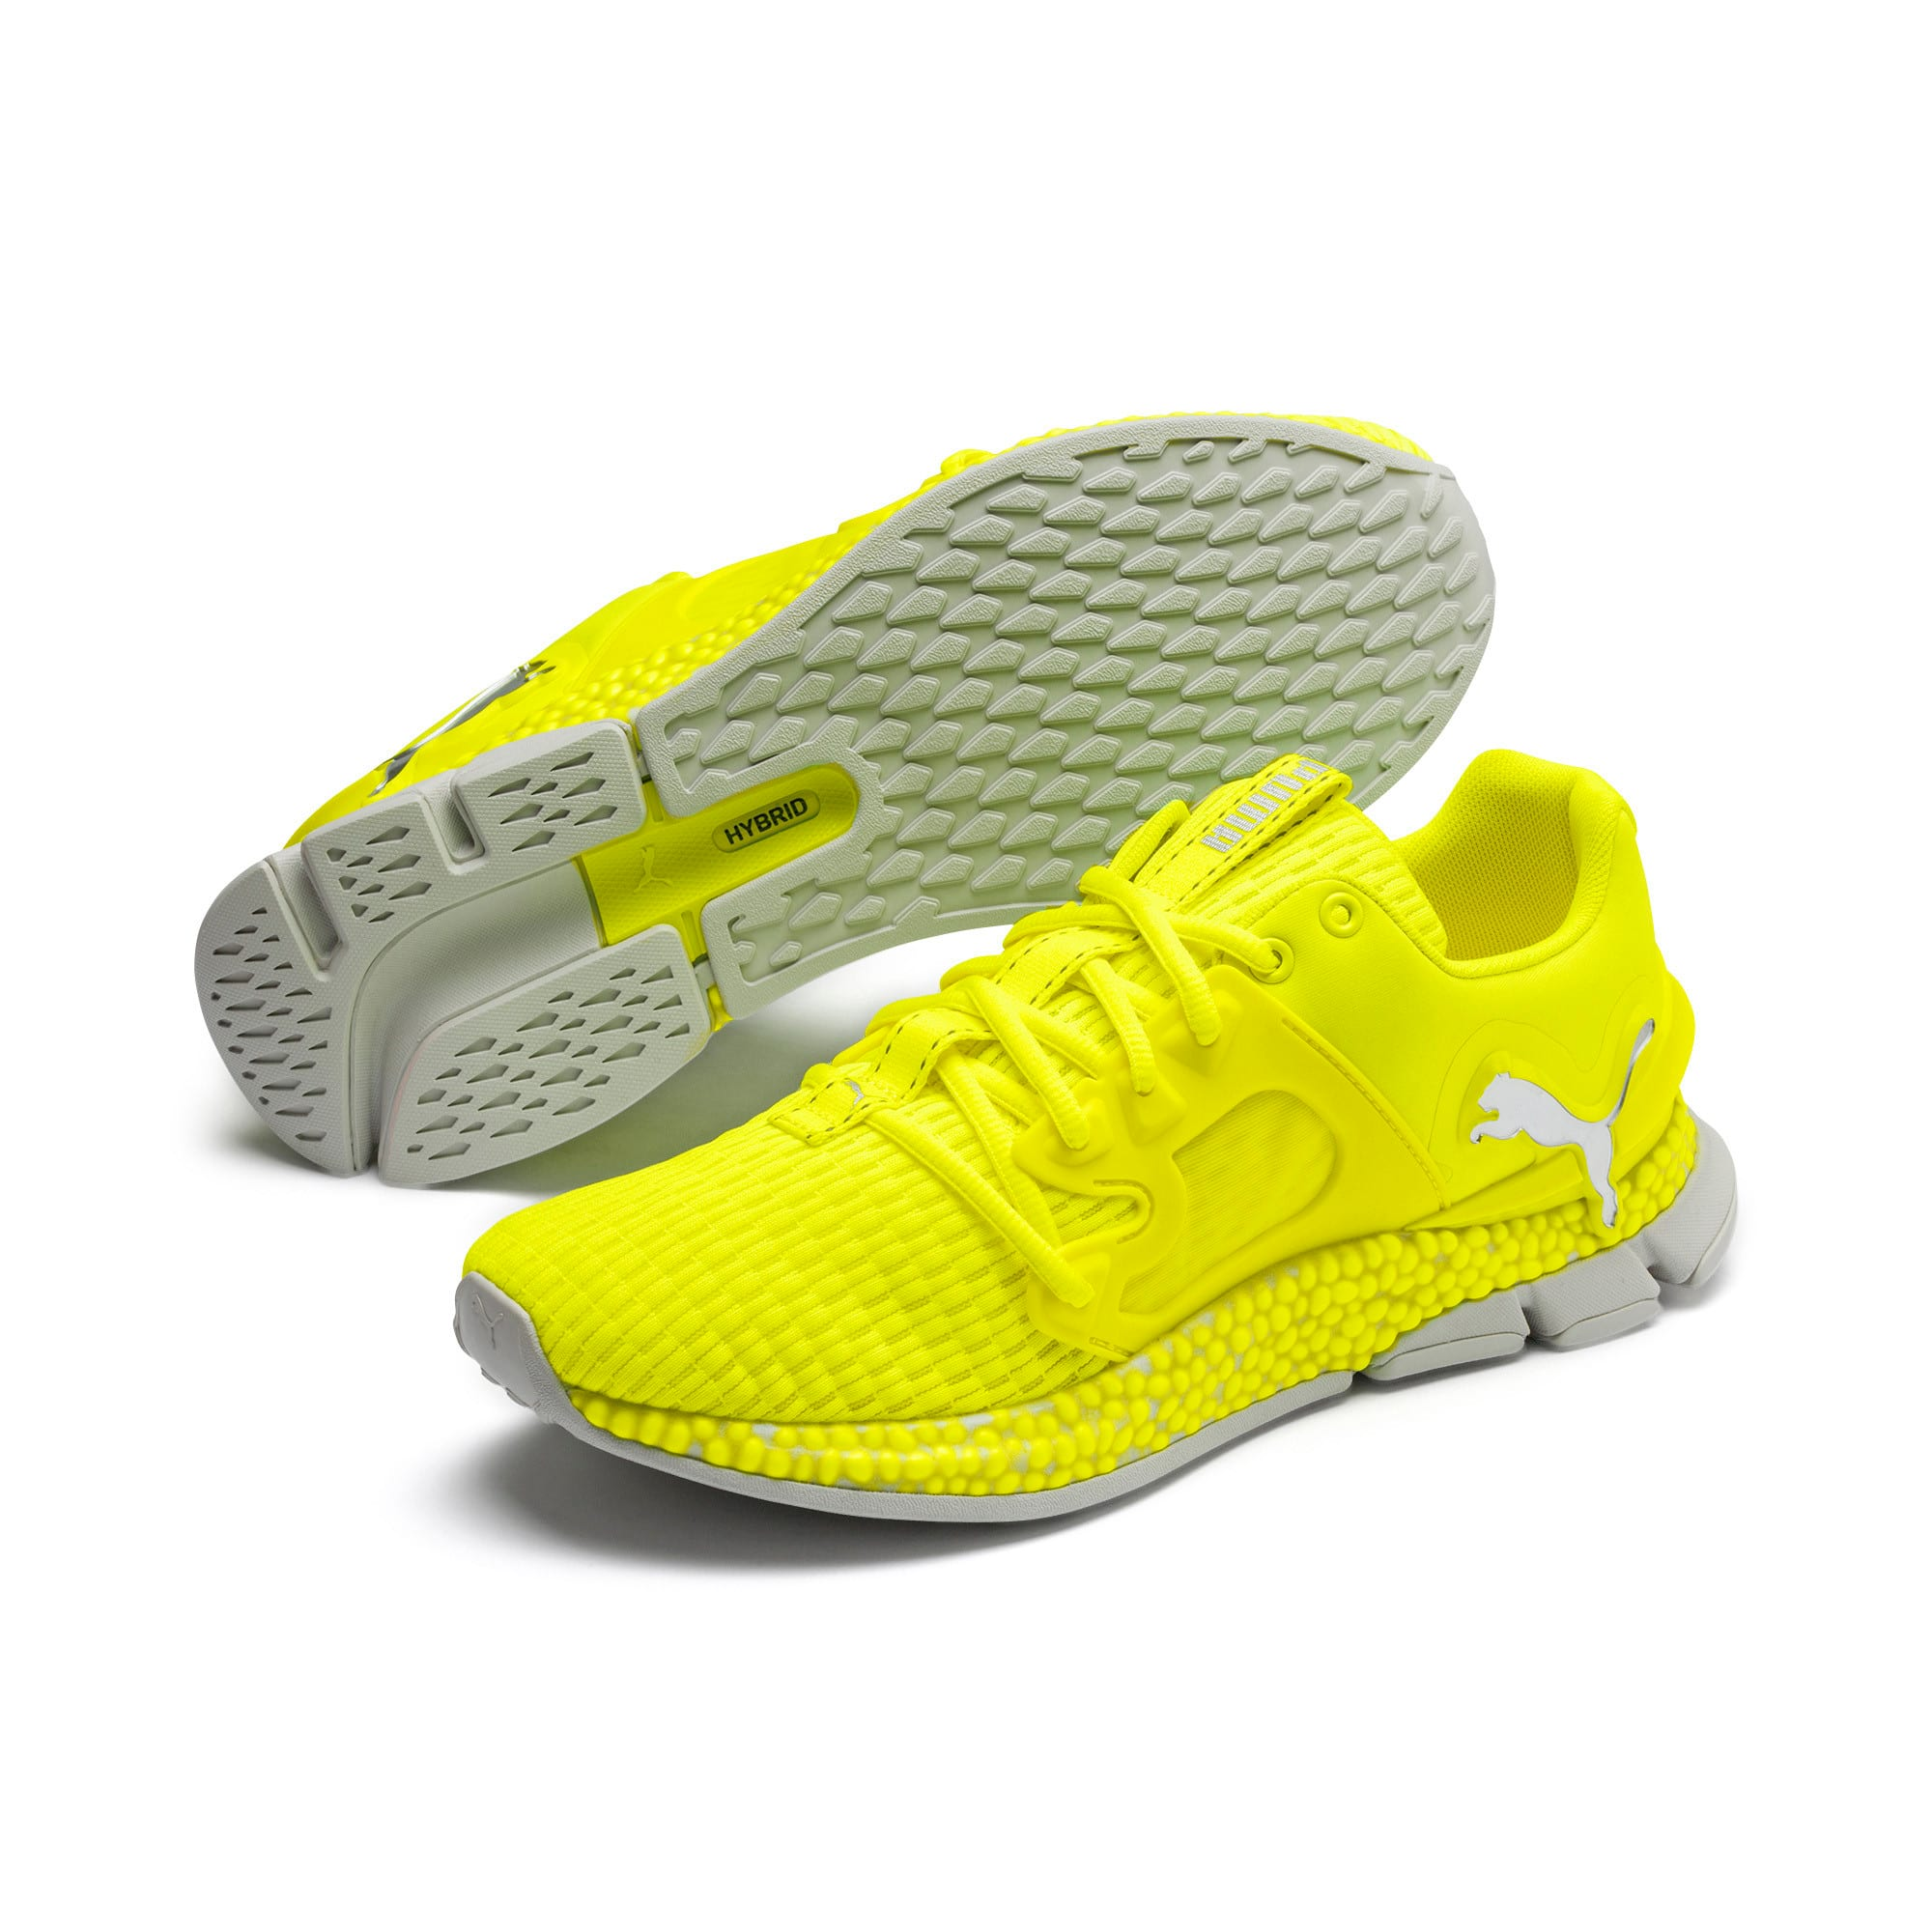 HYBRID Sky Lights Men's Running Shoes, Yellow Alert-Puma Silver, large